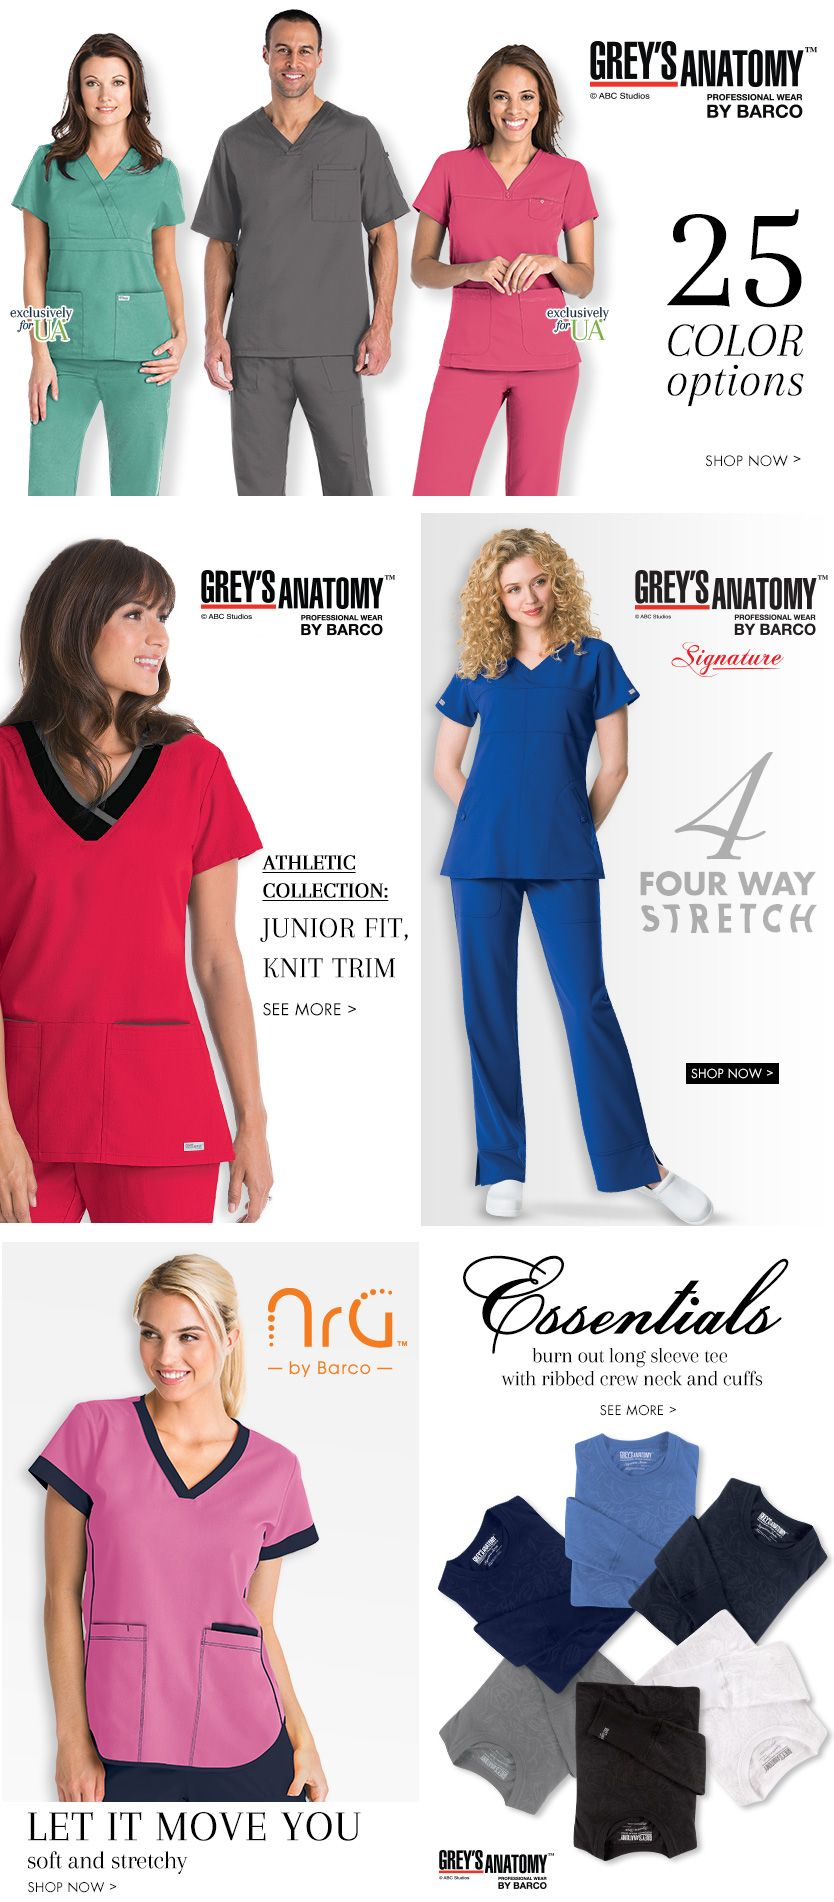 c65057ecf59 Grey's Anatomy scrubs by Barco. | Jobs and future jobs/education ...